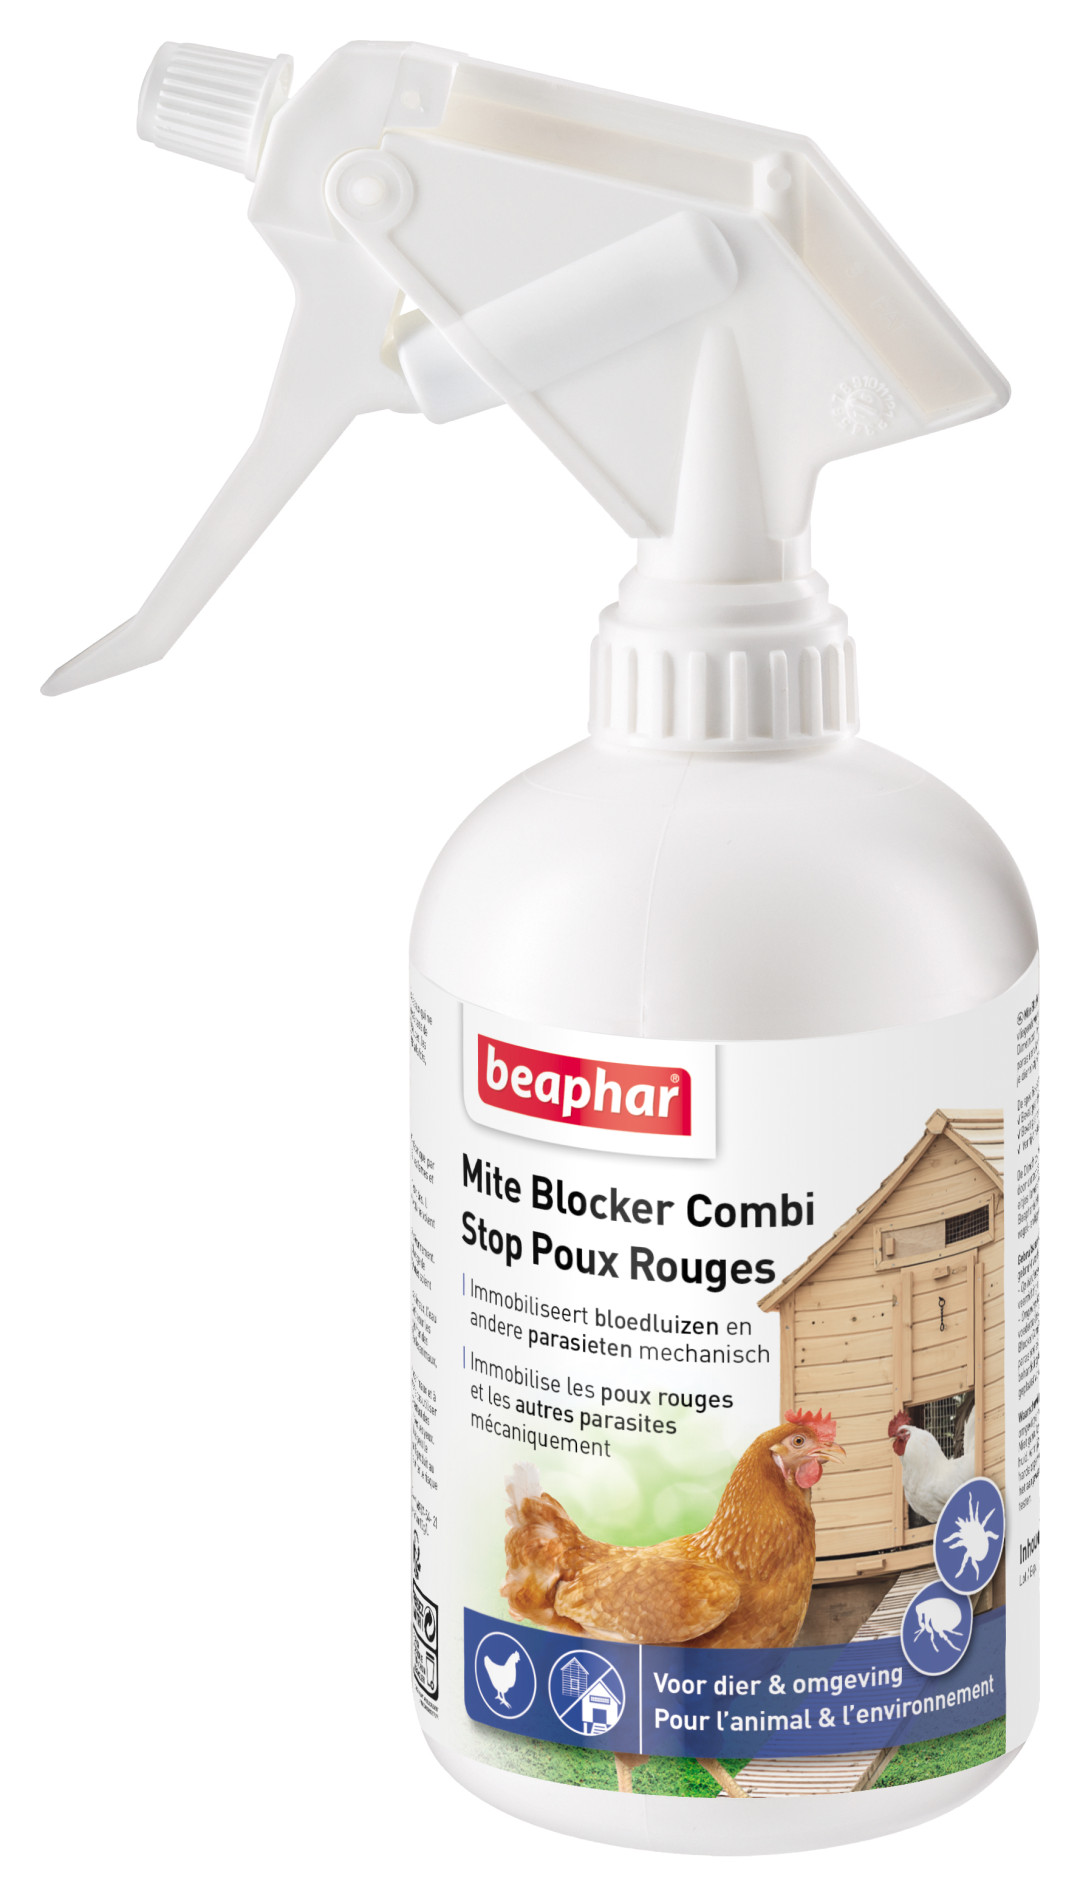 Beaphar Mite Blocker Combi 500 ml